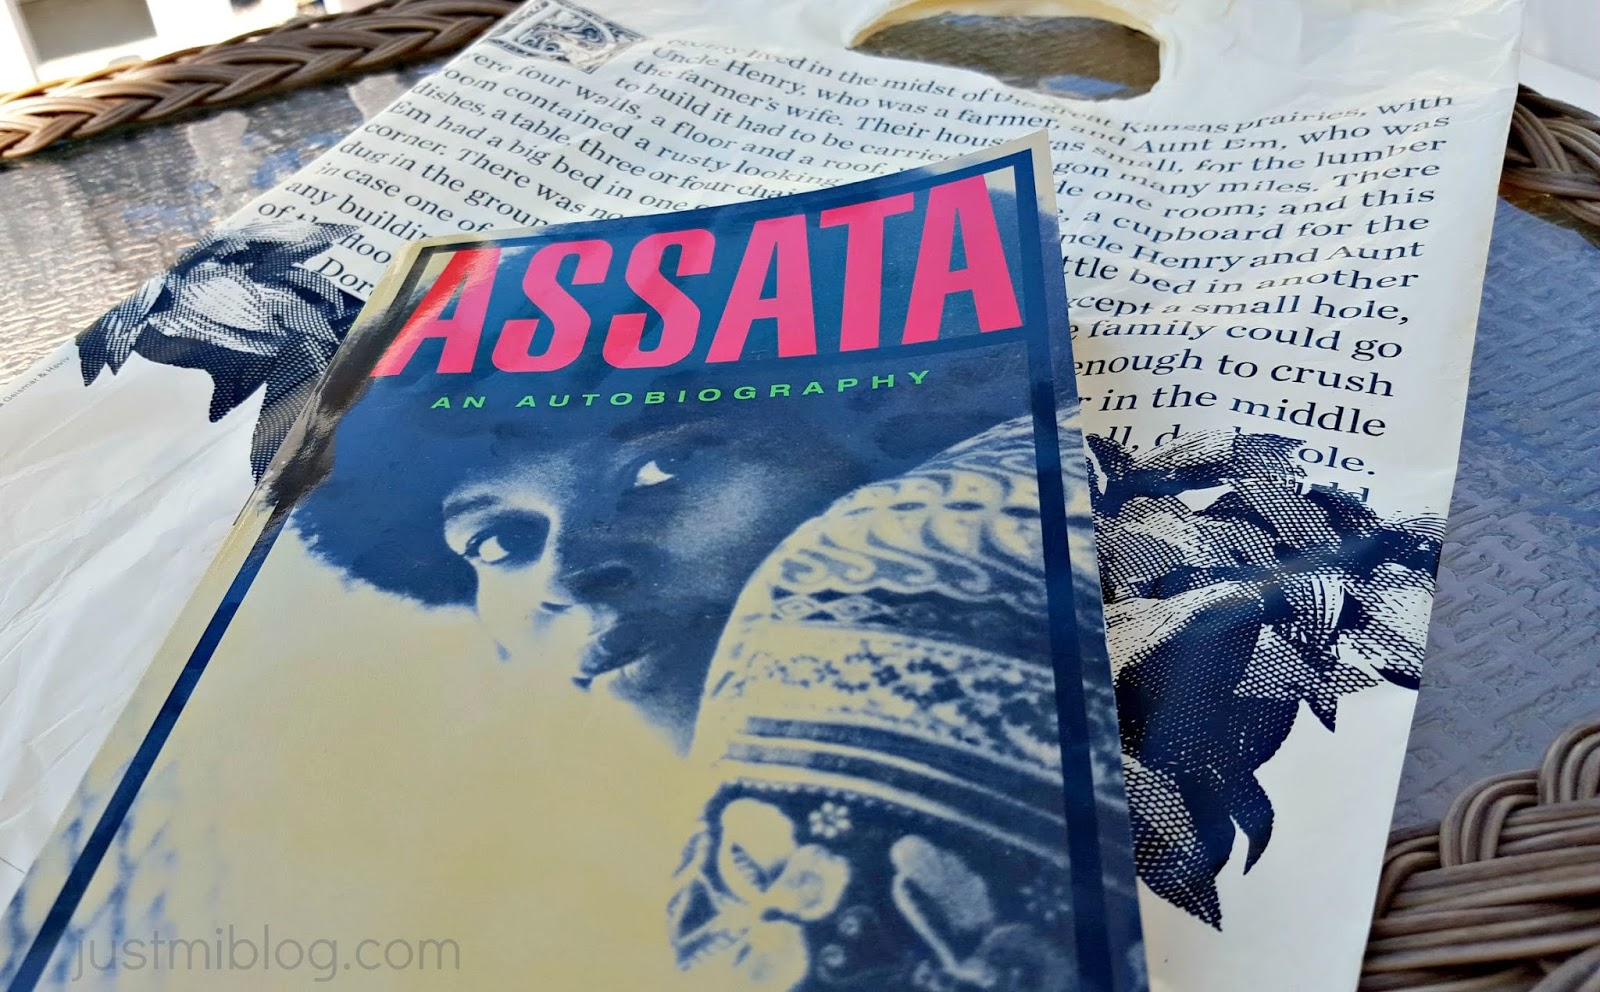 Assata is the first book being read in our book club